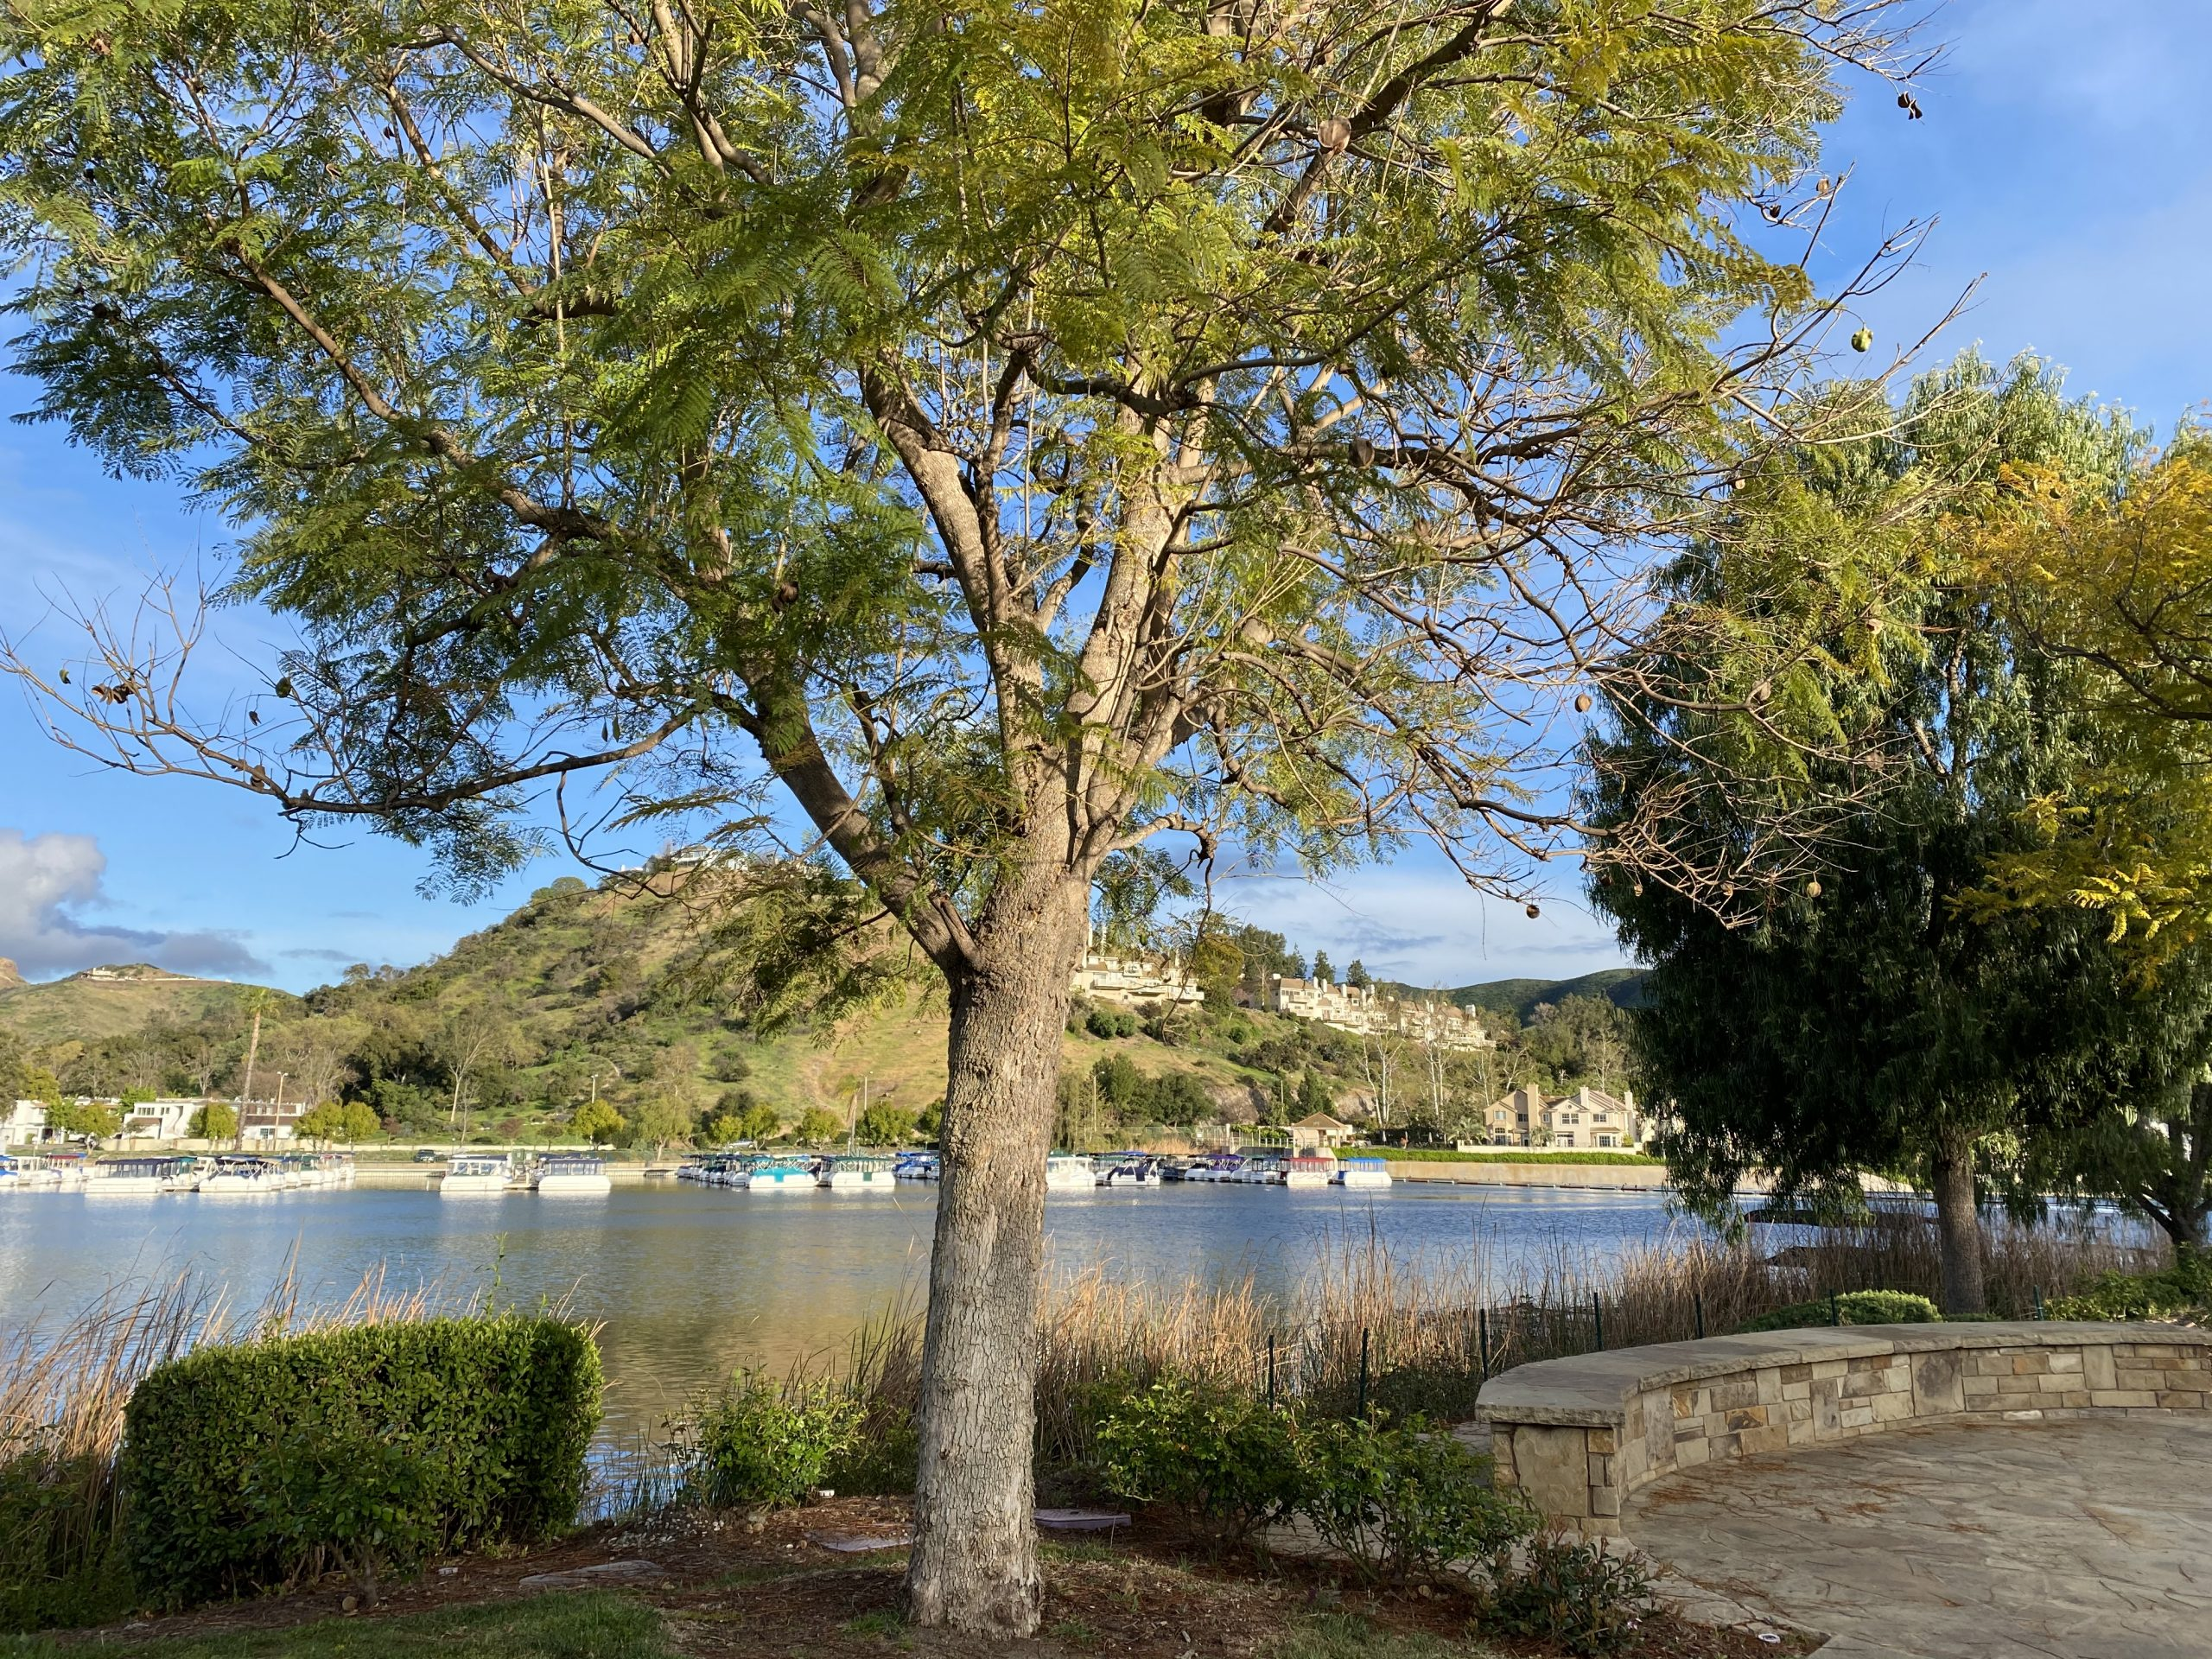 Westlake Village opposite harbor